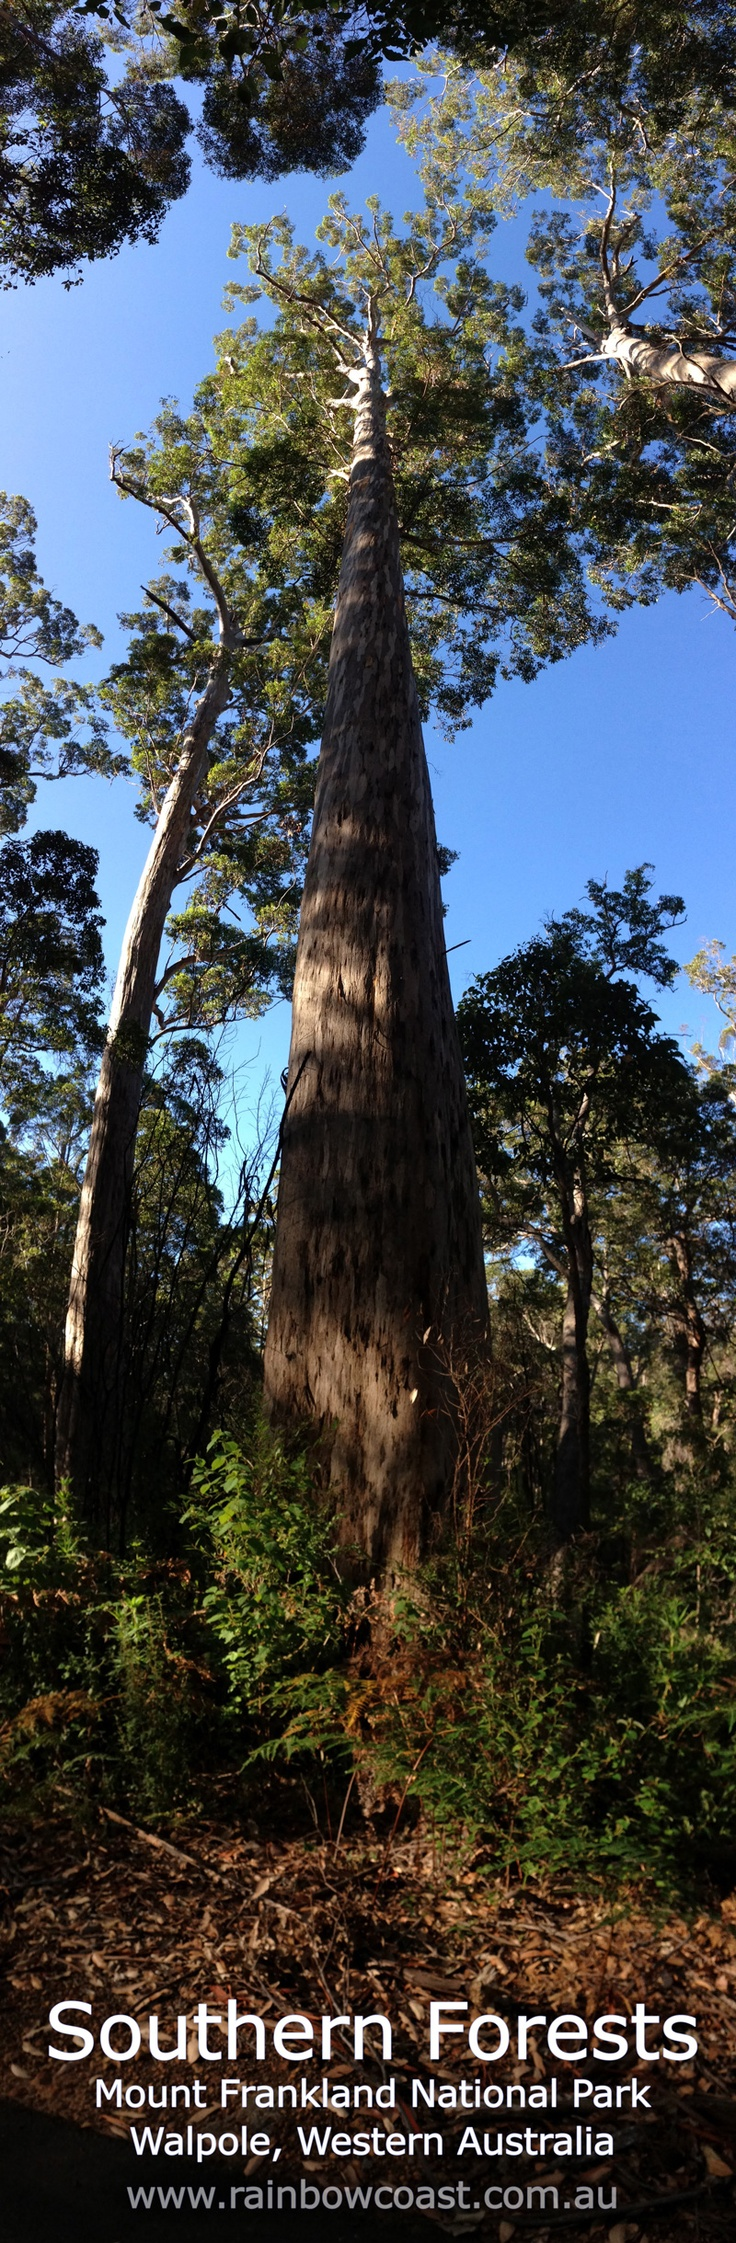 Mount Frankland National Park has karri, marri and tingle trees common only to the far south coast of Western Australia.